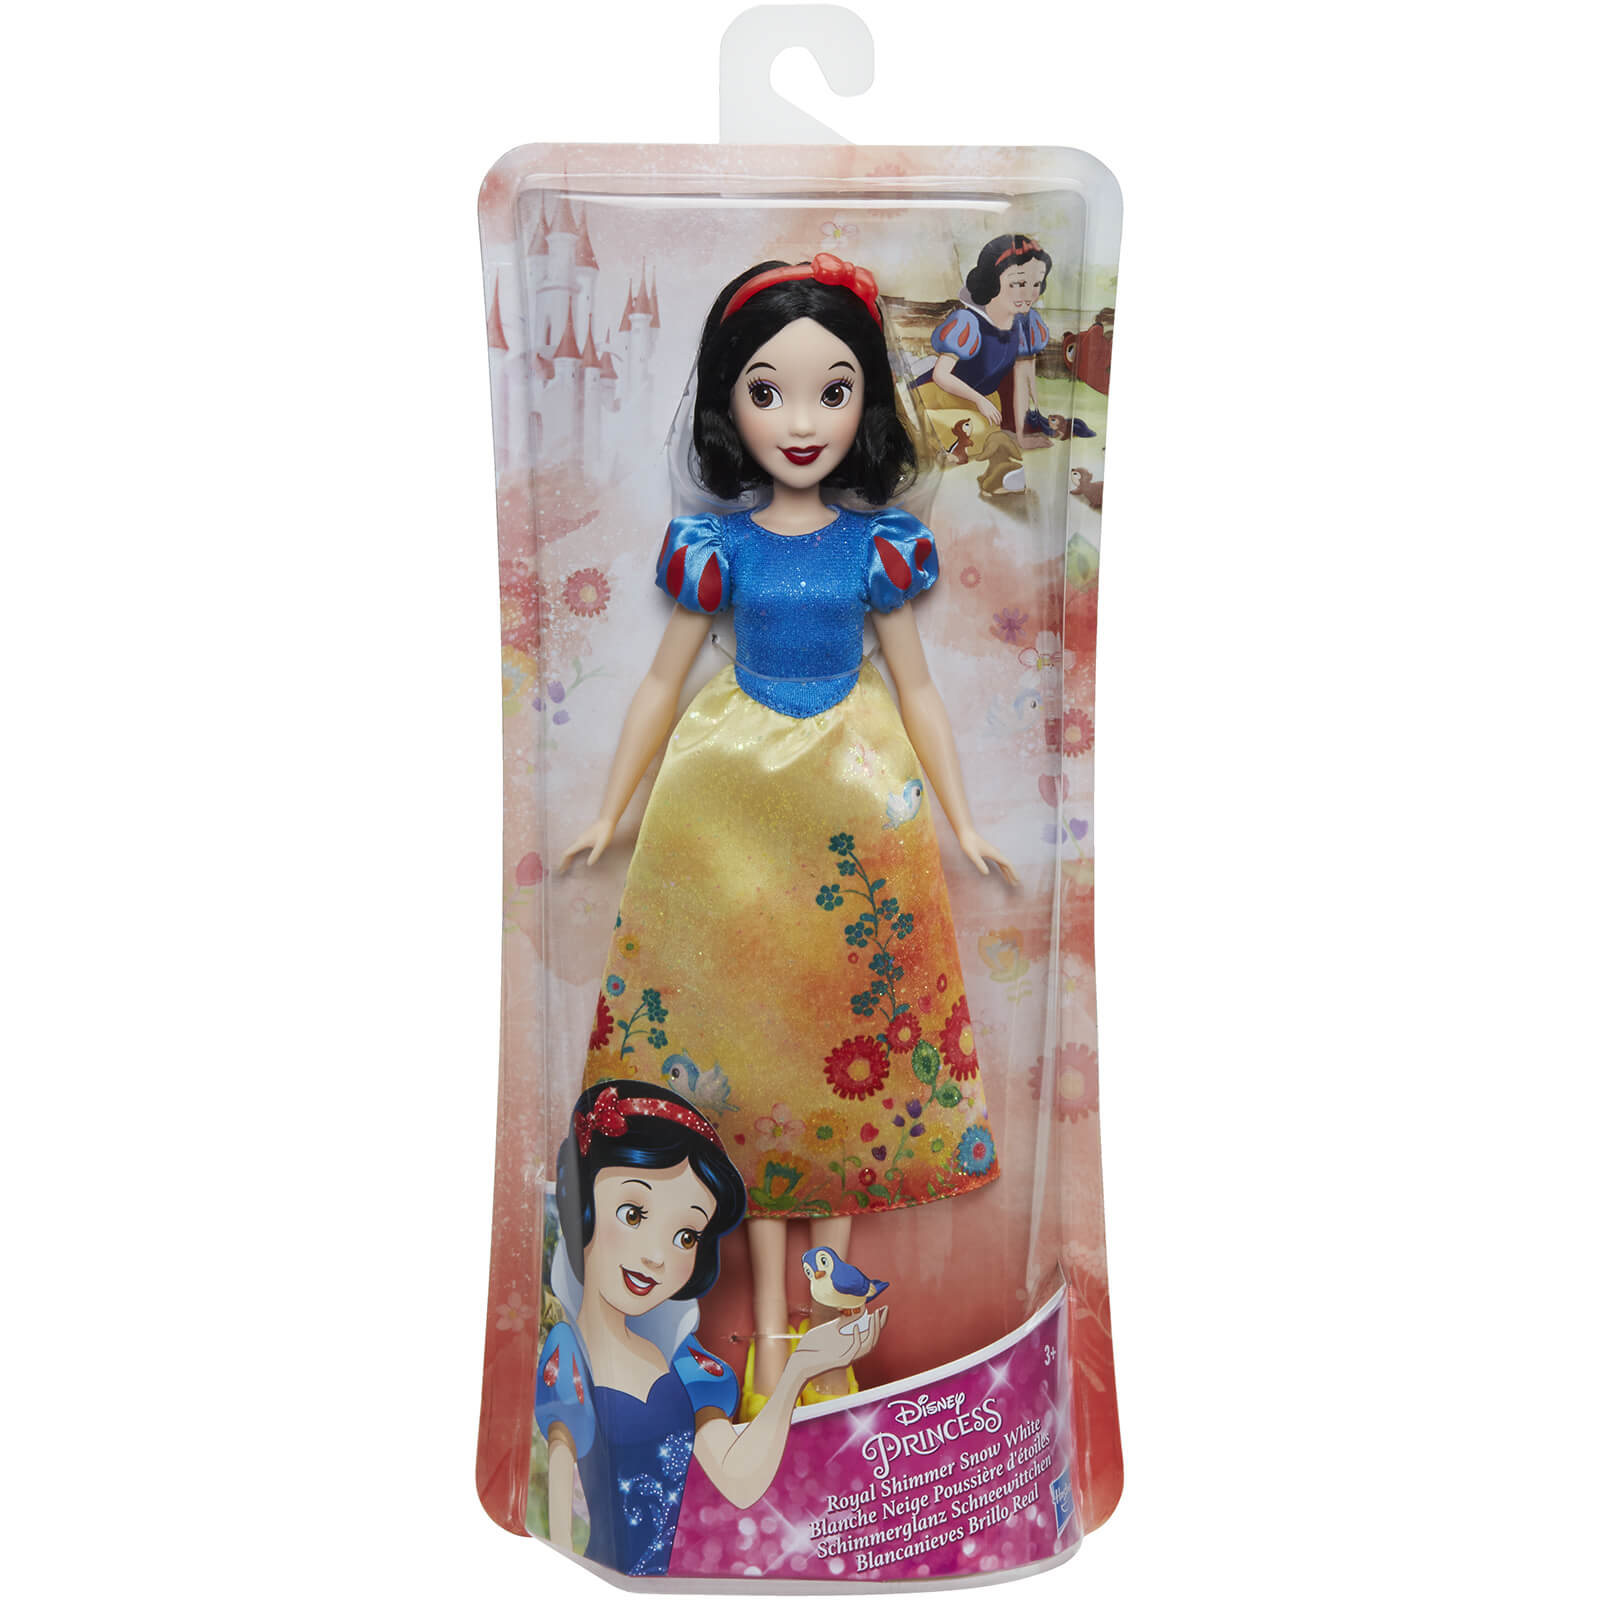 Disney Princess Snow White Royal Shimmer Fashion Doll